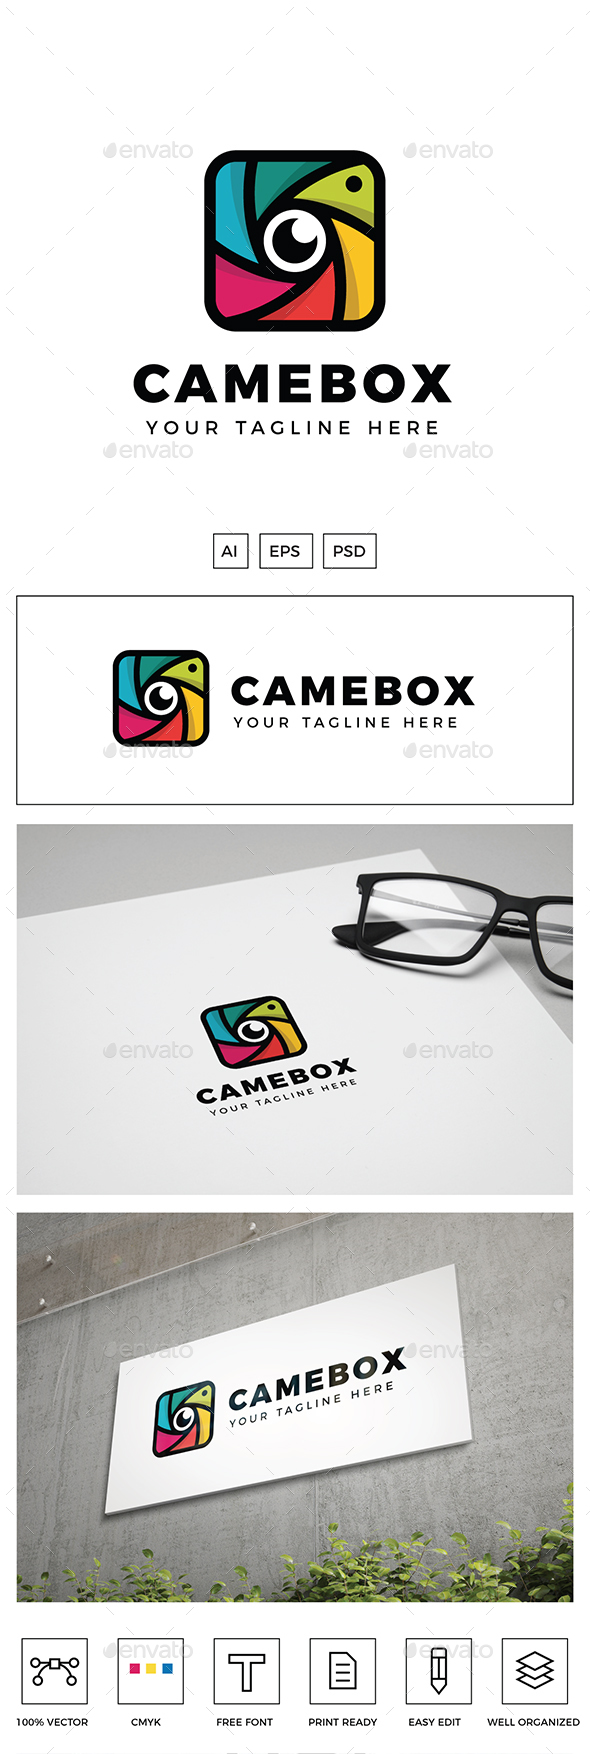 Camera Box Logo - Objects Logo Templates